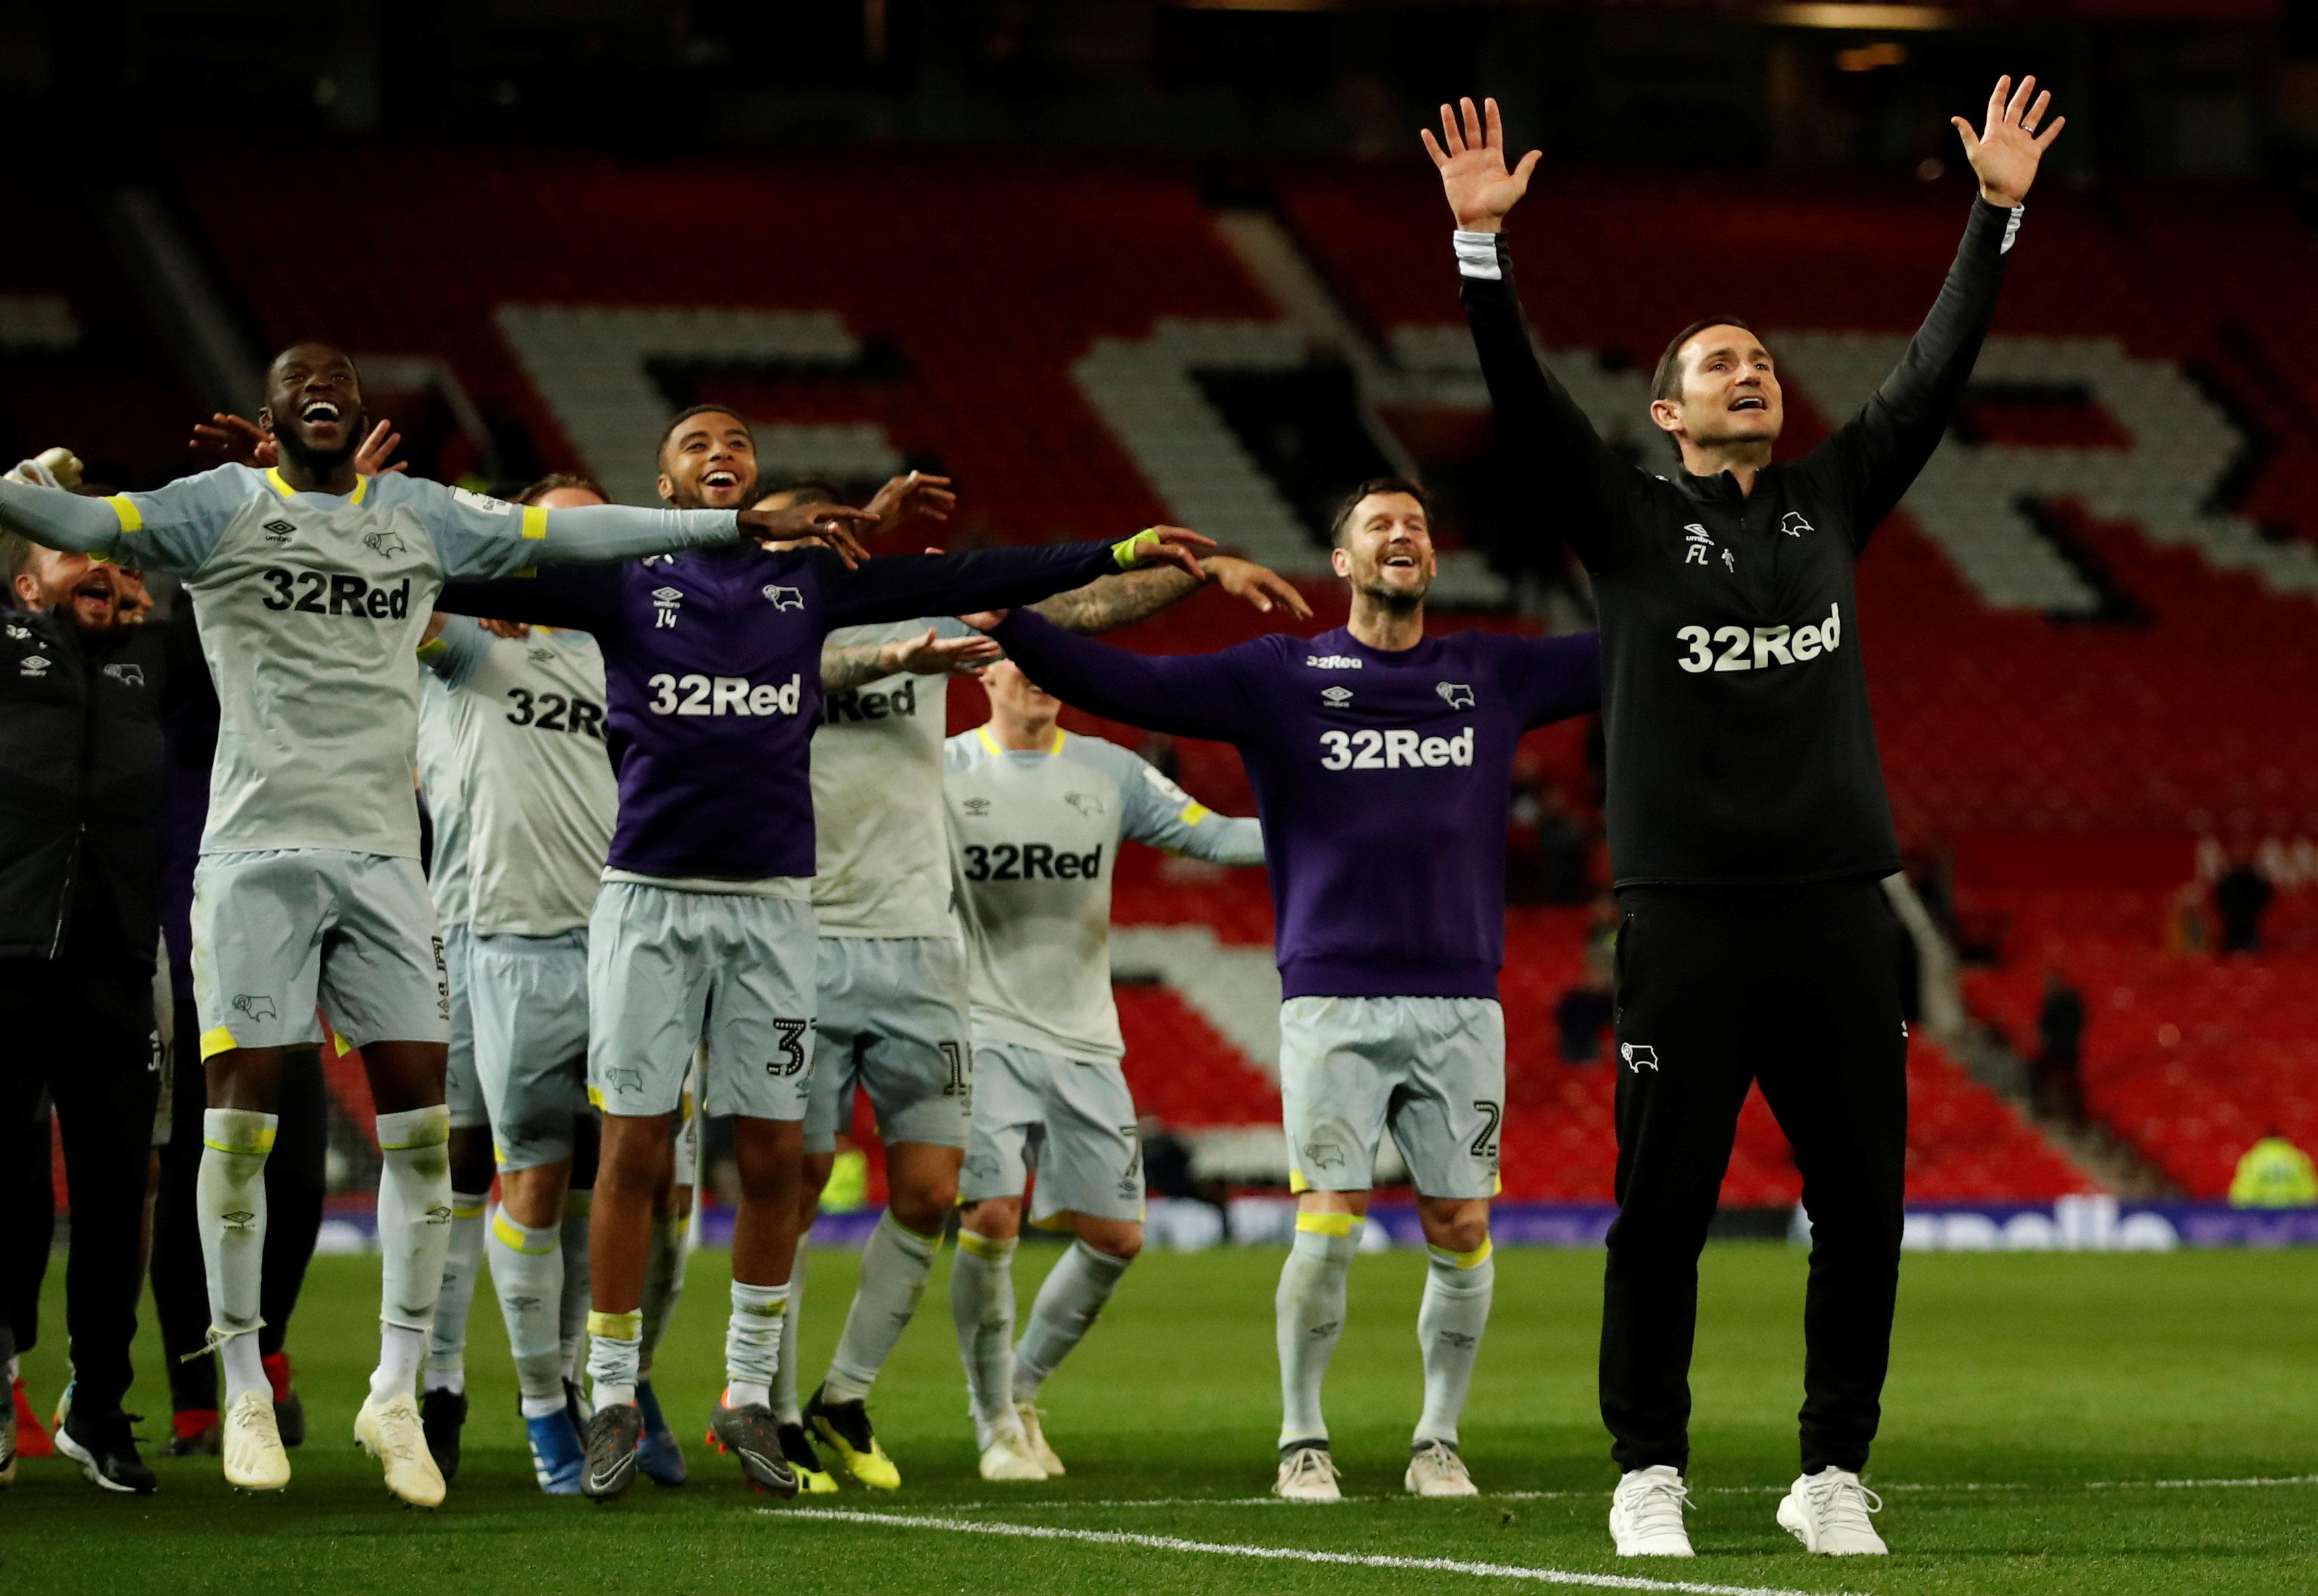 Frank Lampard leads his players in celebrating Derby's League Cup win at Old Trafford on Tuesday night